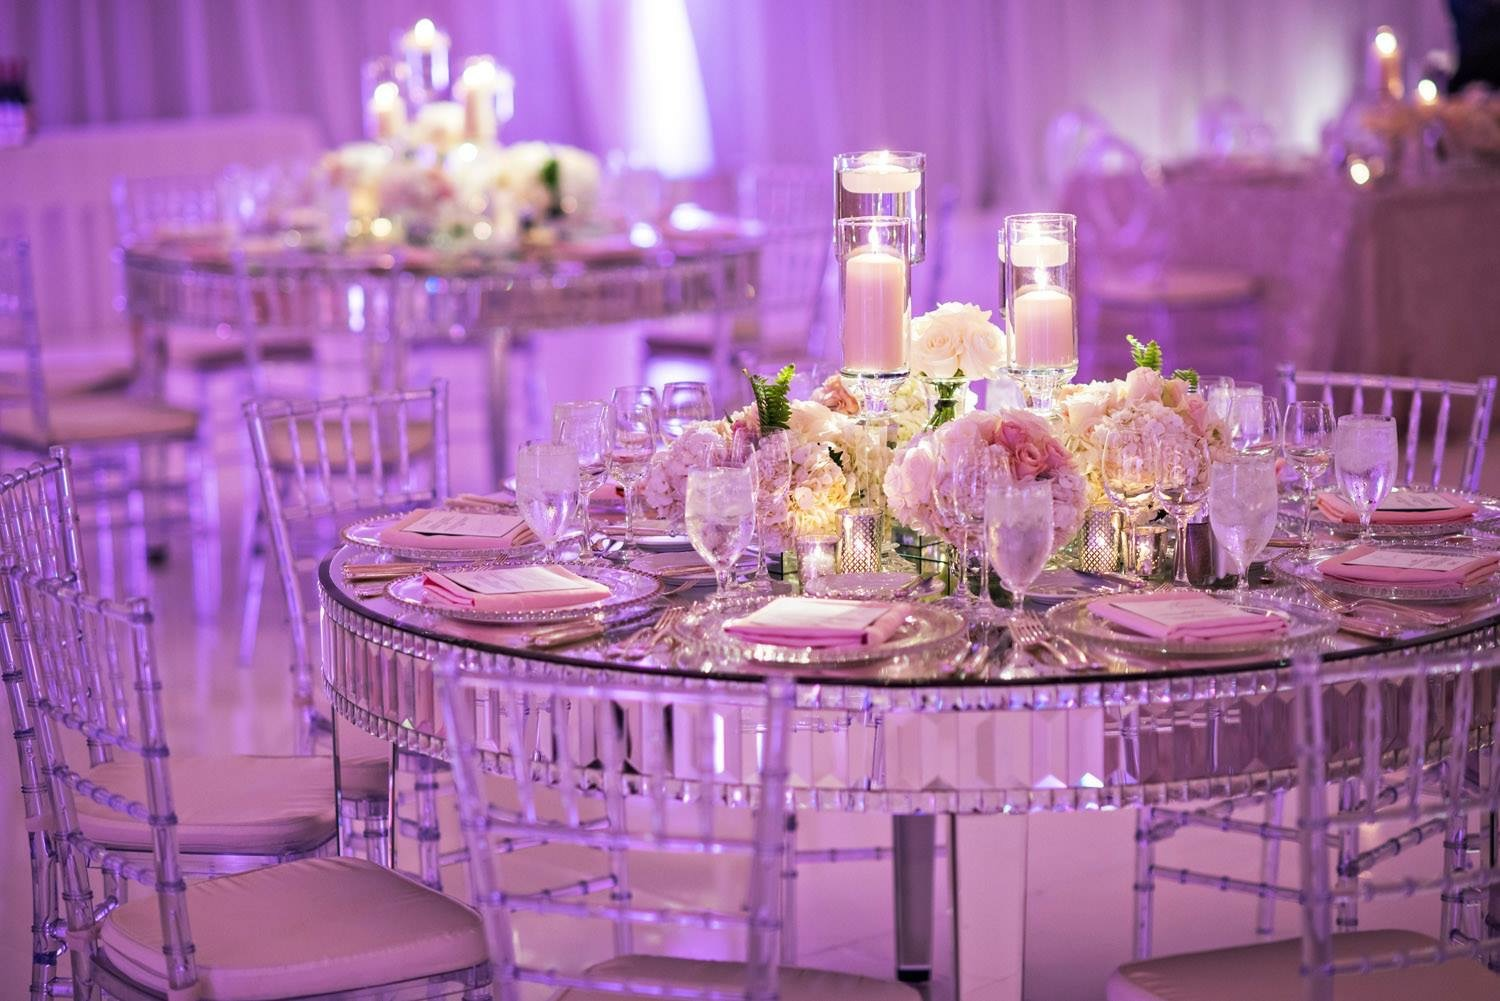 Mirrored Round Table